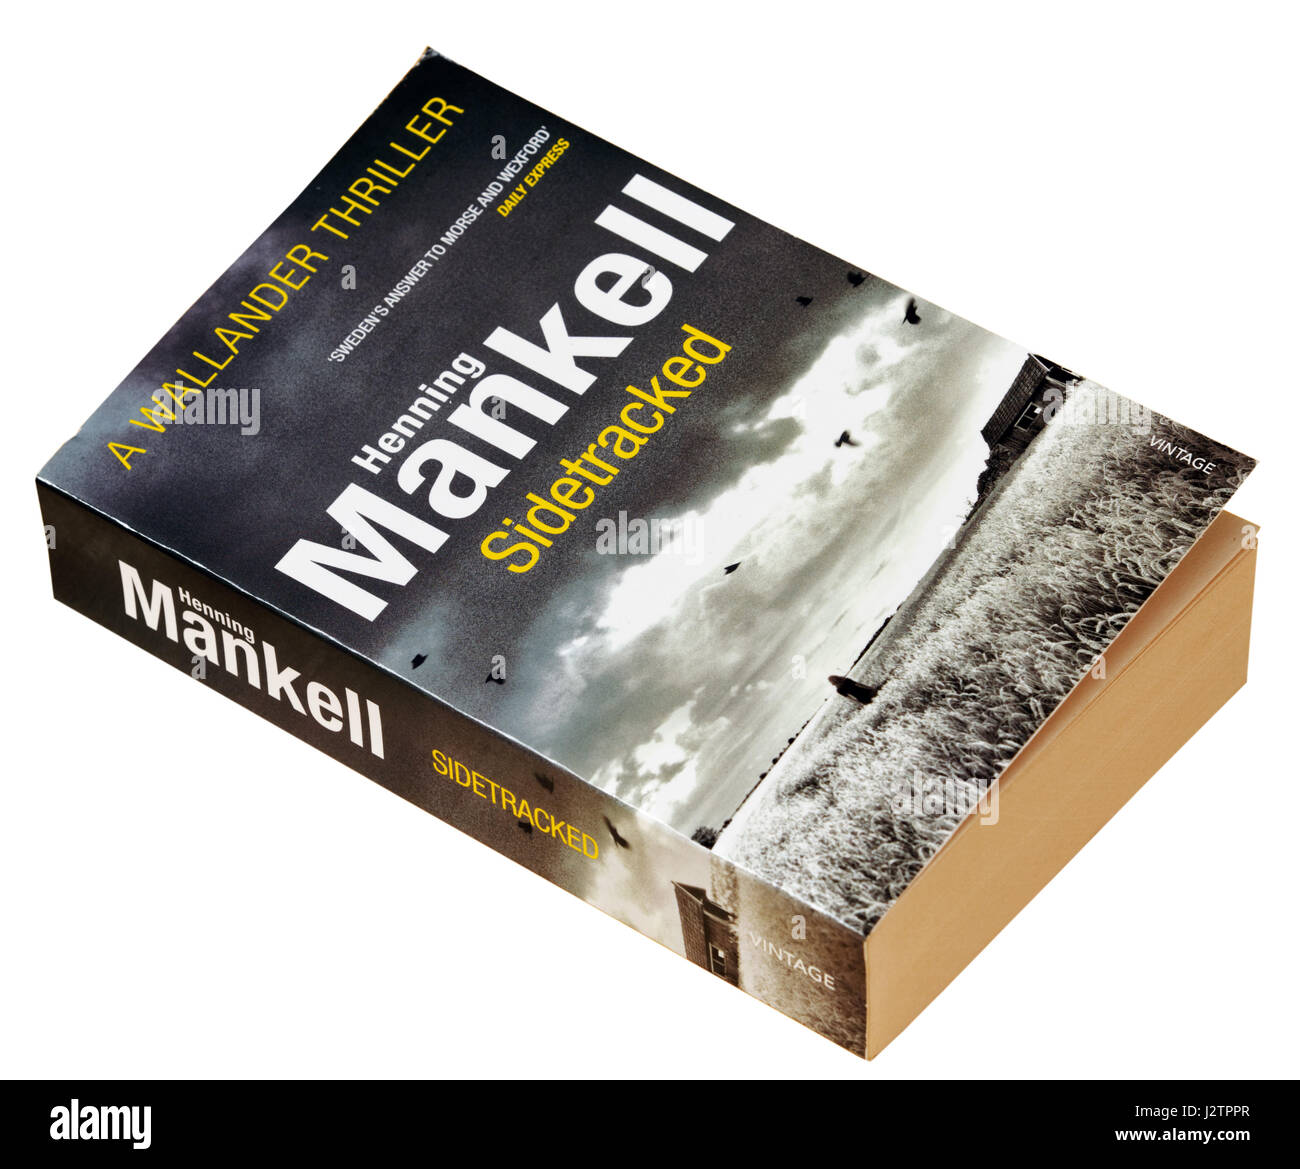 Sidetracked  by Henning Mankell - A detective Wallander story - Stock Image